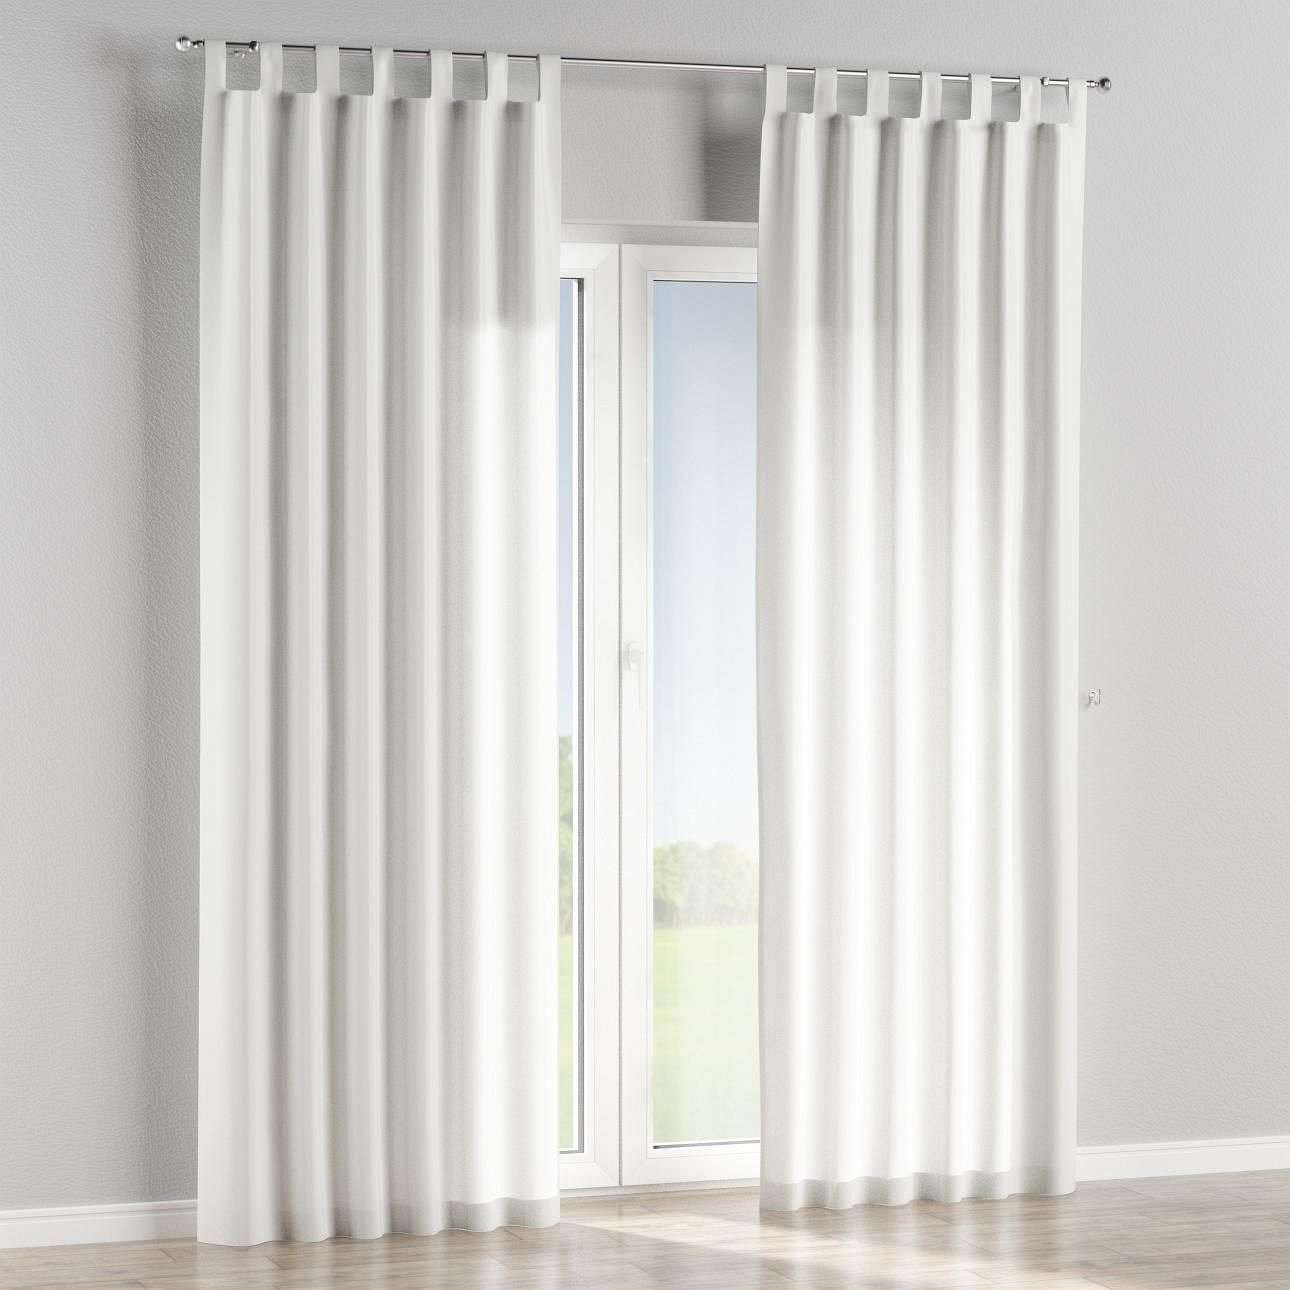 Tab top curtains in collection Taffeta , fabric: 103-88